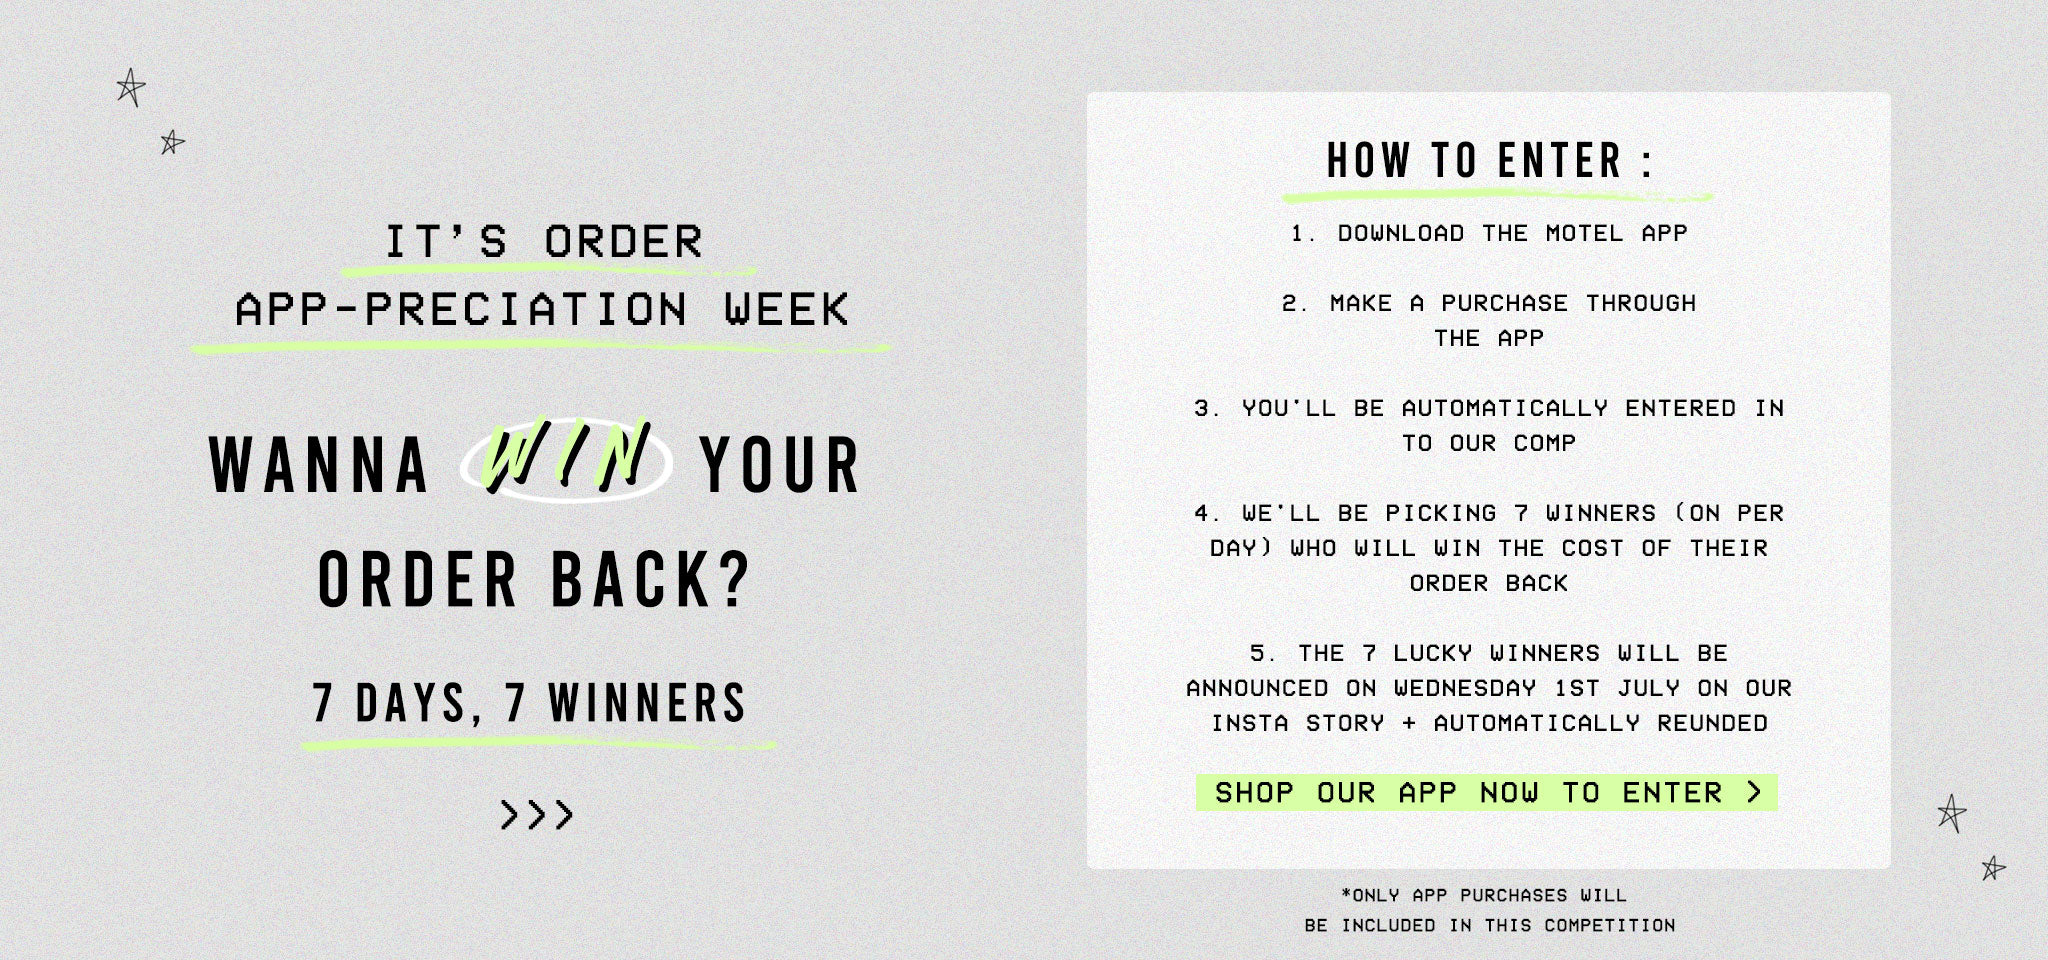 WIN YOUR ORDER BACK